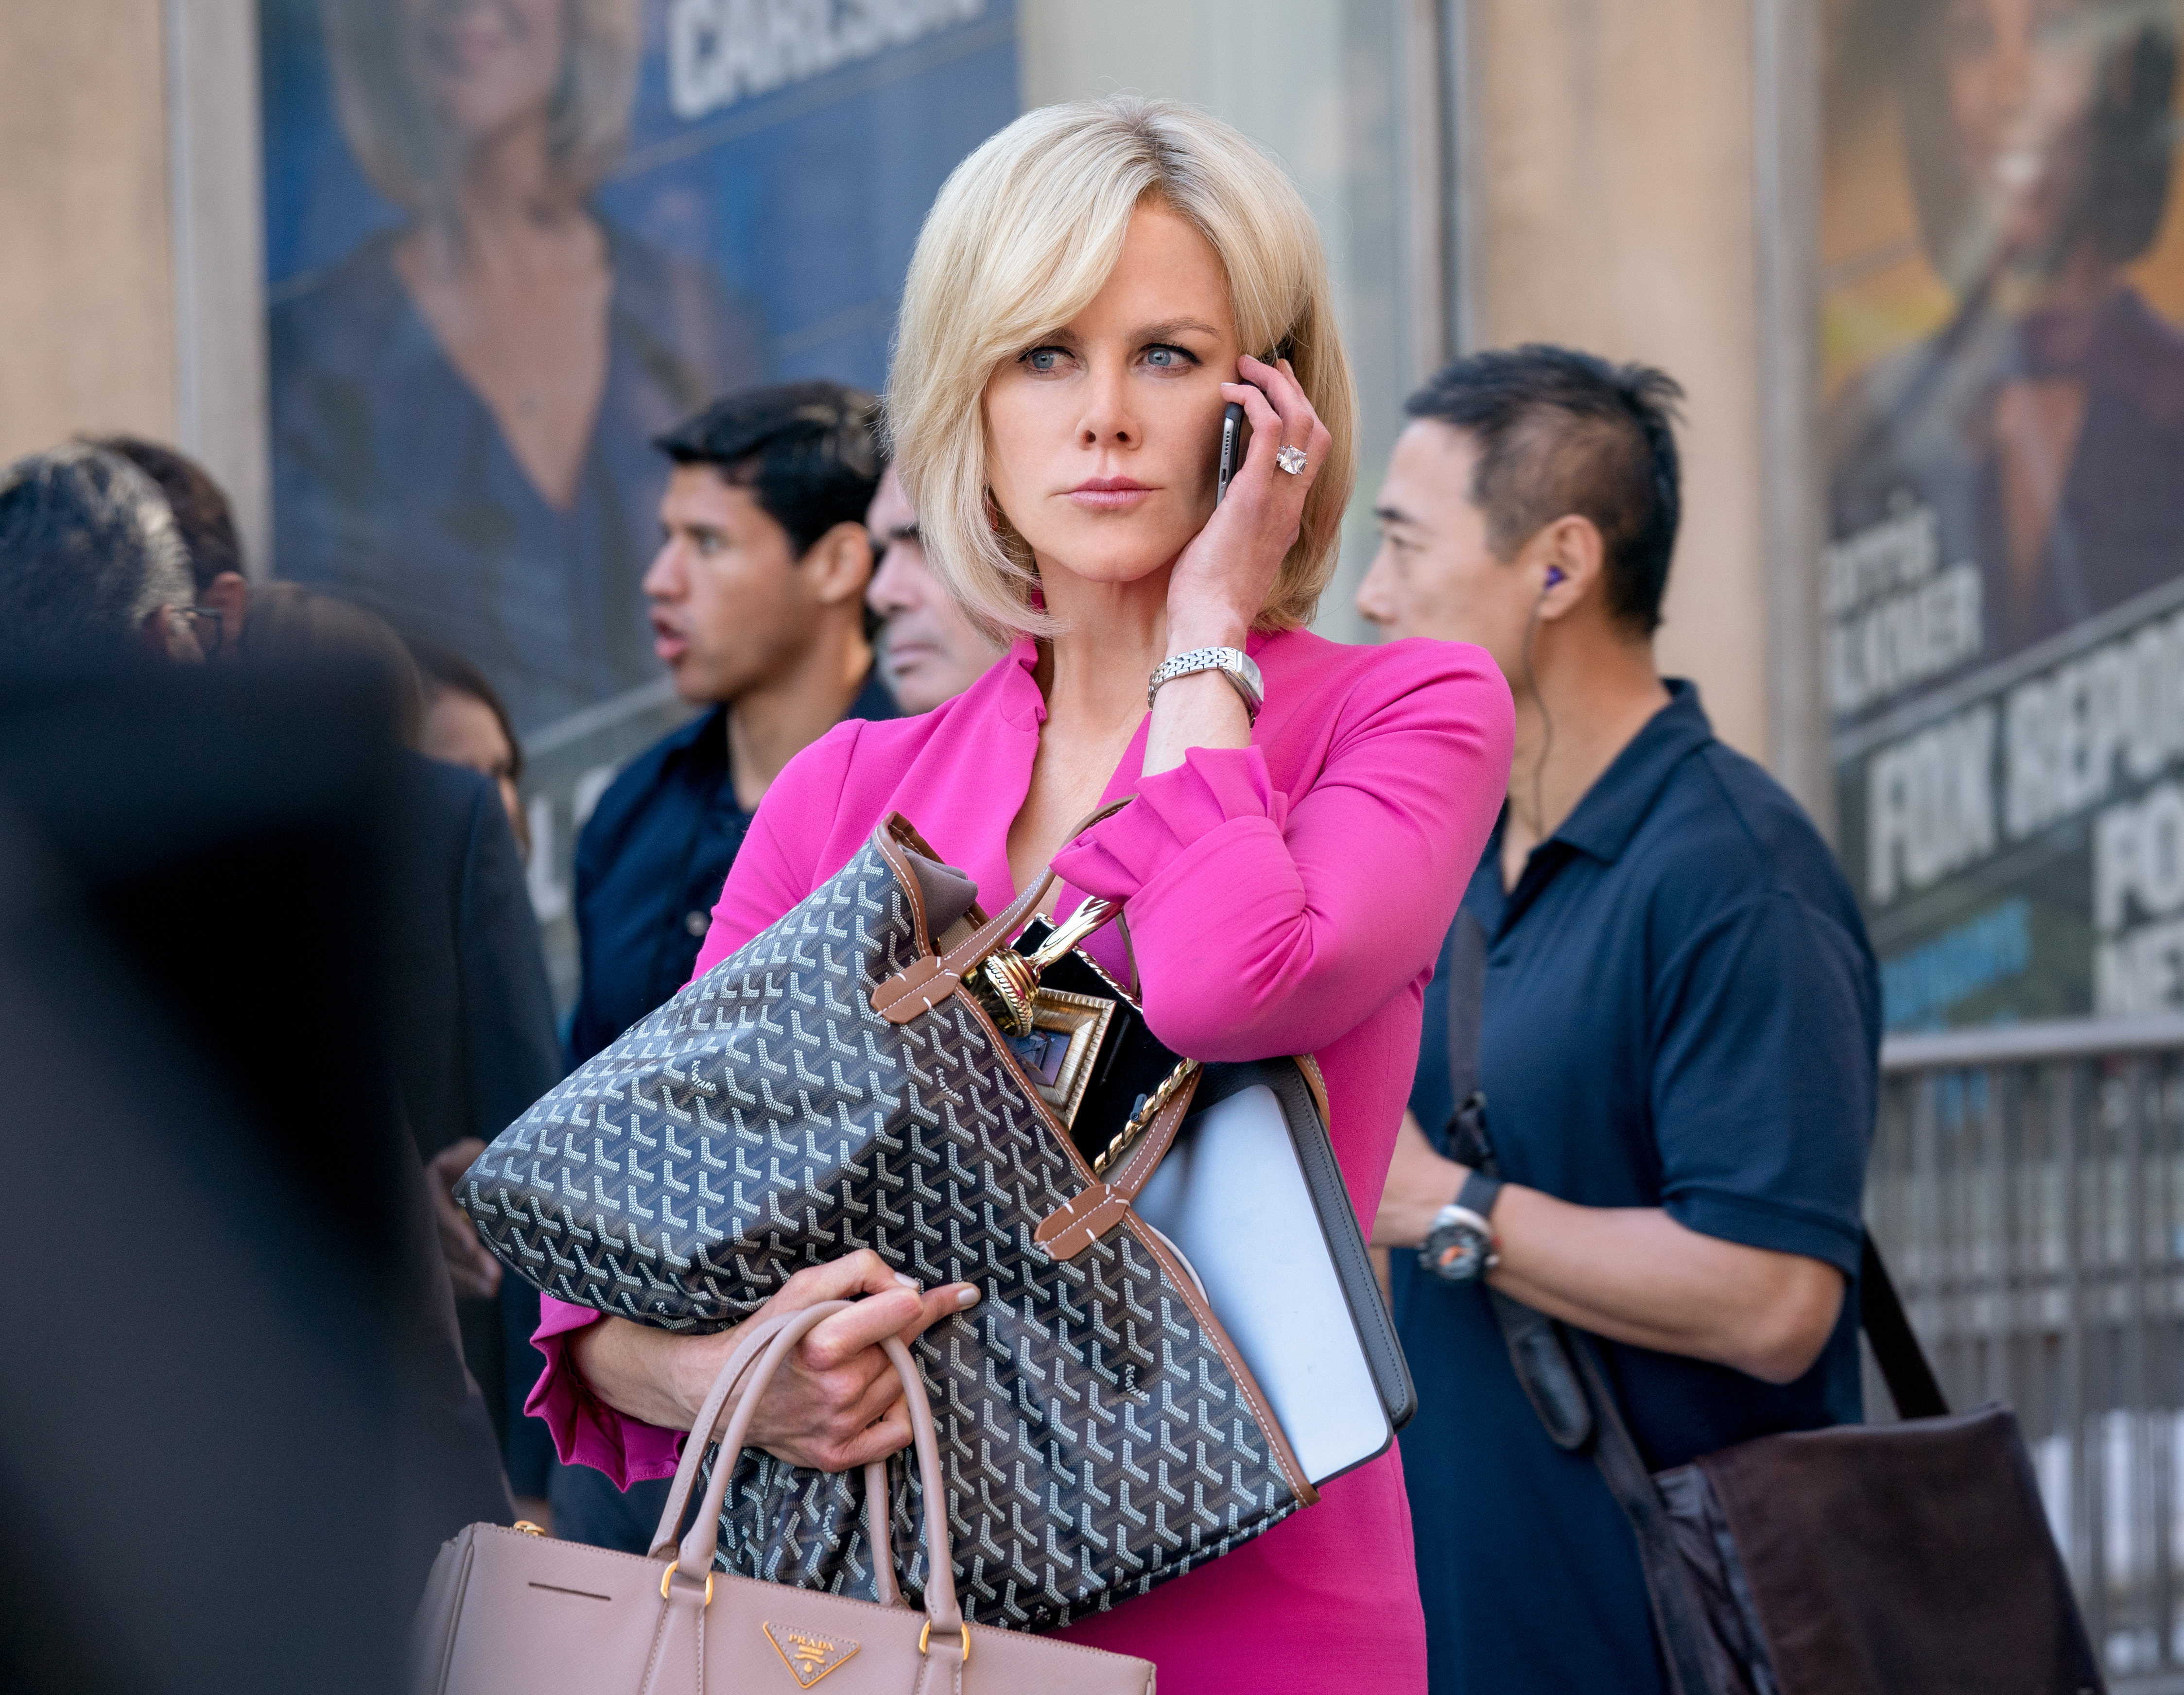 Nicole Kidman stars as 'Gretchen Carlson' in BOMBSHELL. Photo Credit: Hilary Bronwyn Gayle.